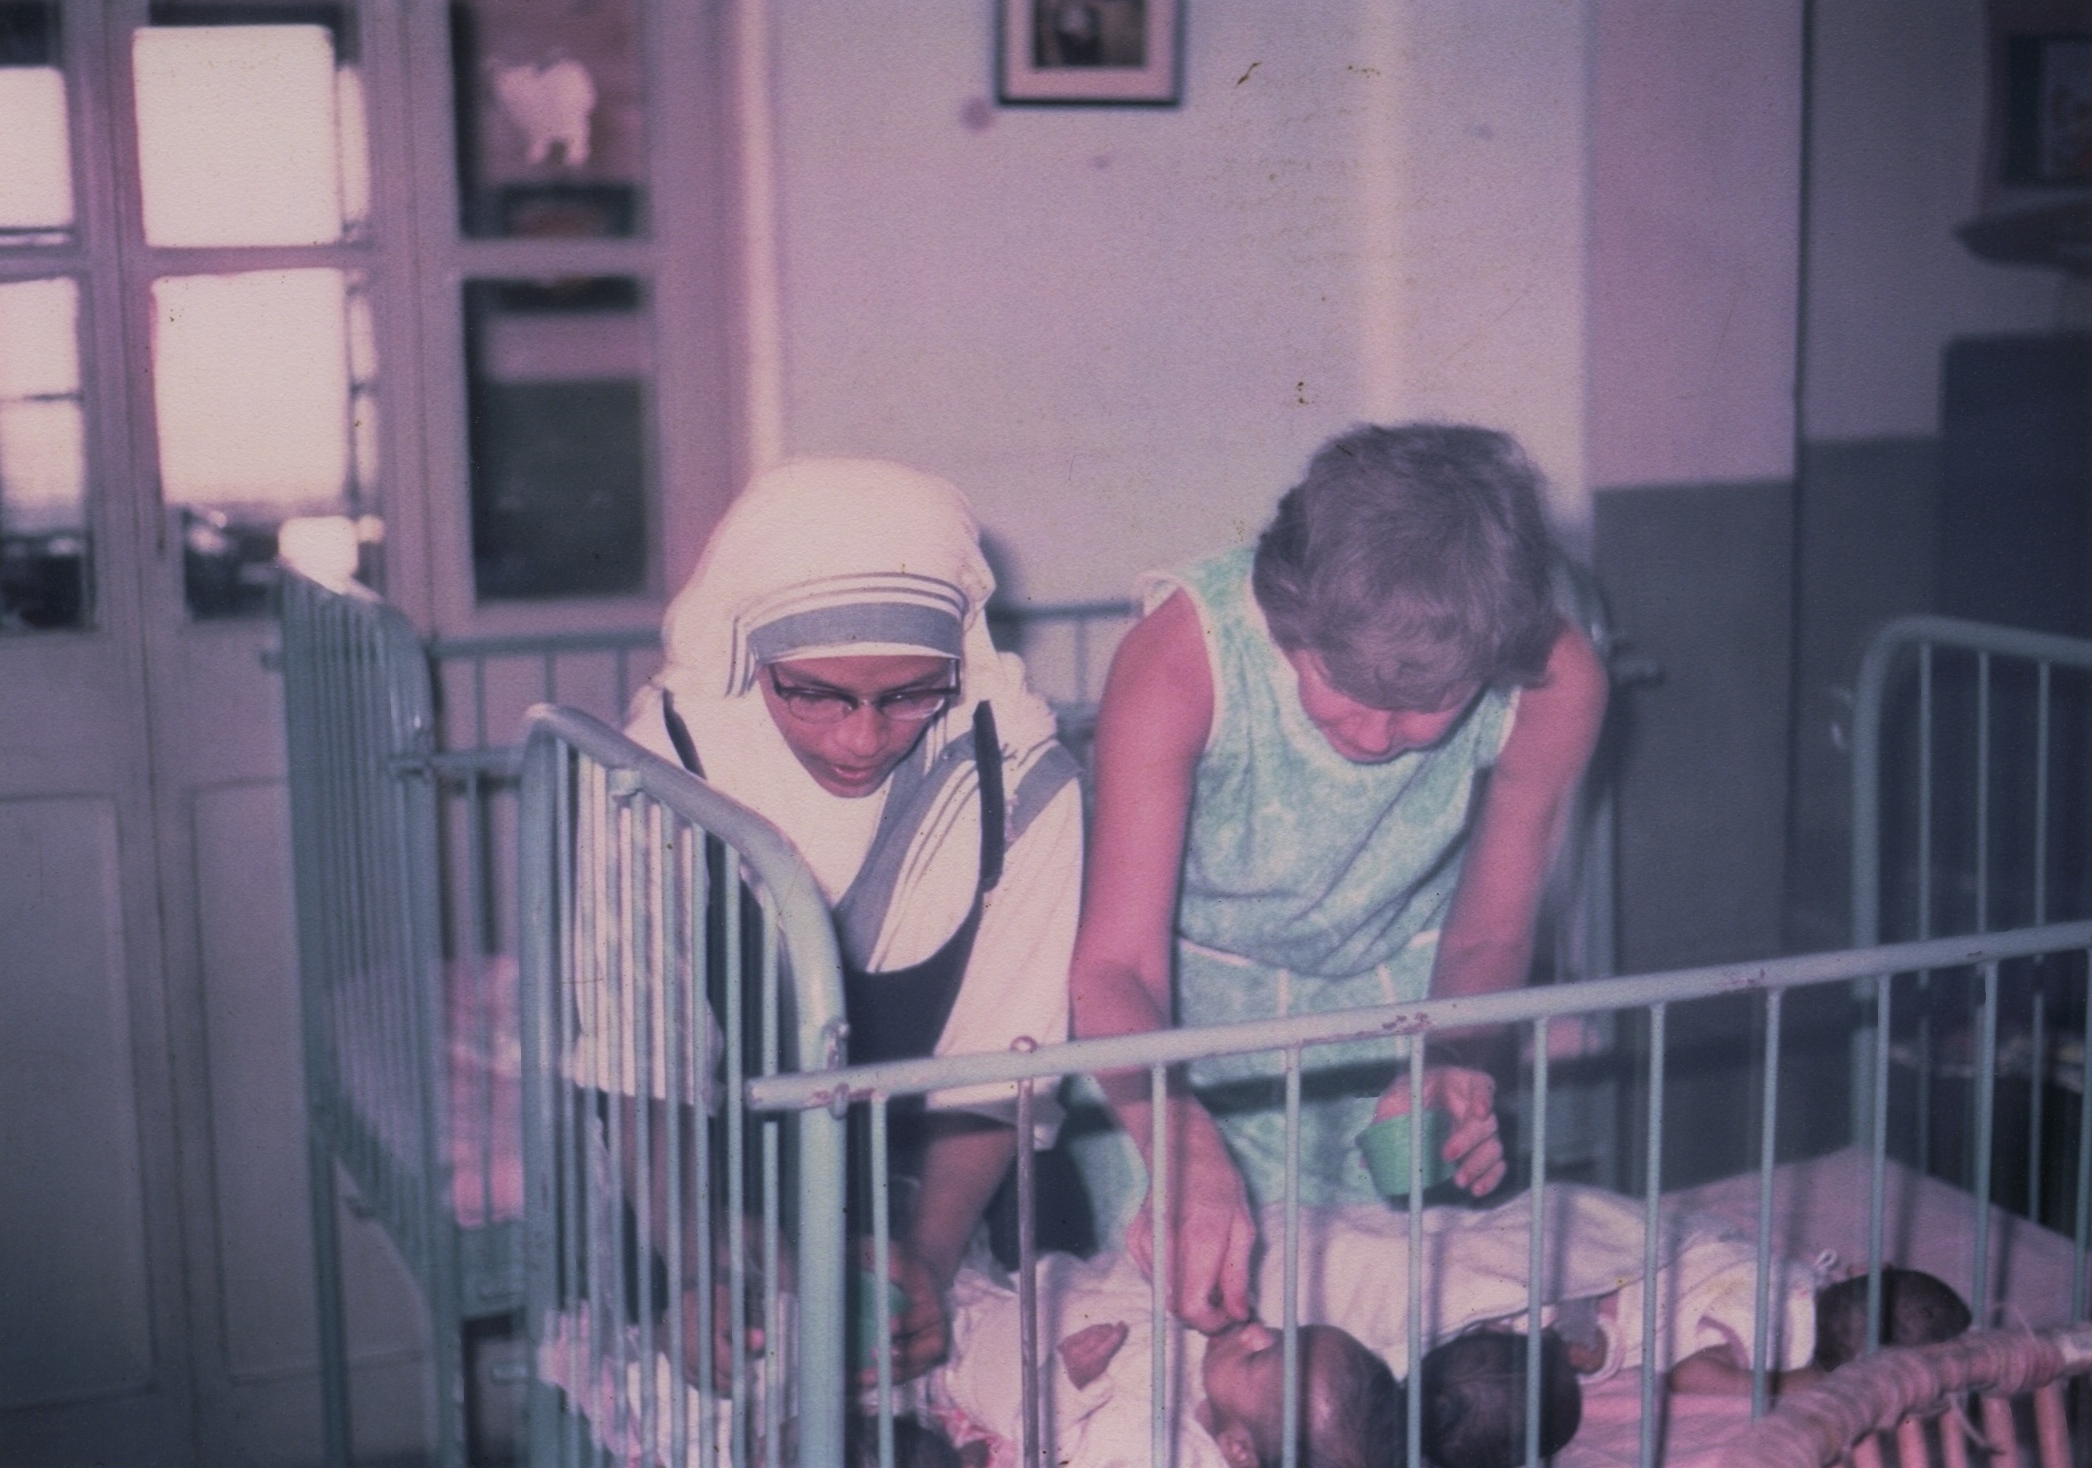 1968 One of Mother Teresa's Sisters and Eleanor McPhillips tend to orphans at the Missionaries of Charity in Kolkata, India.